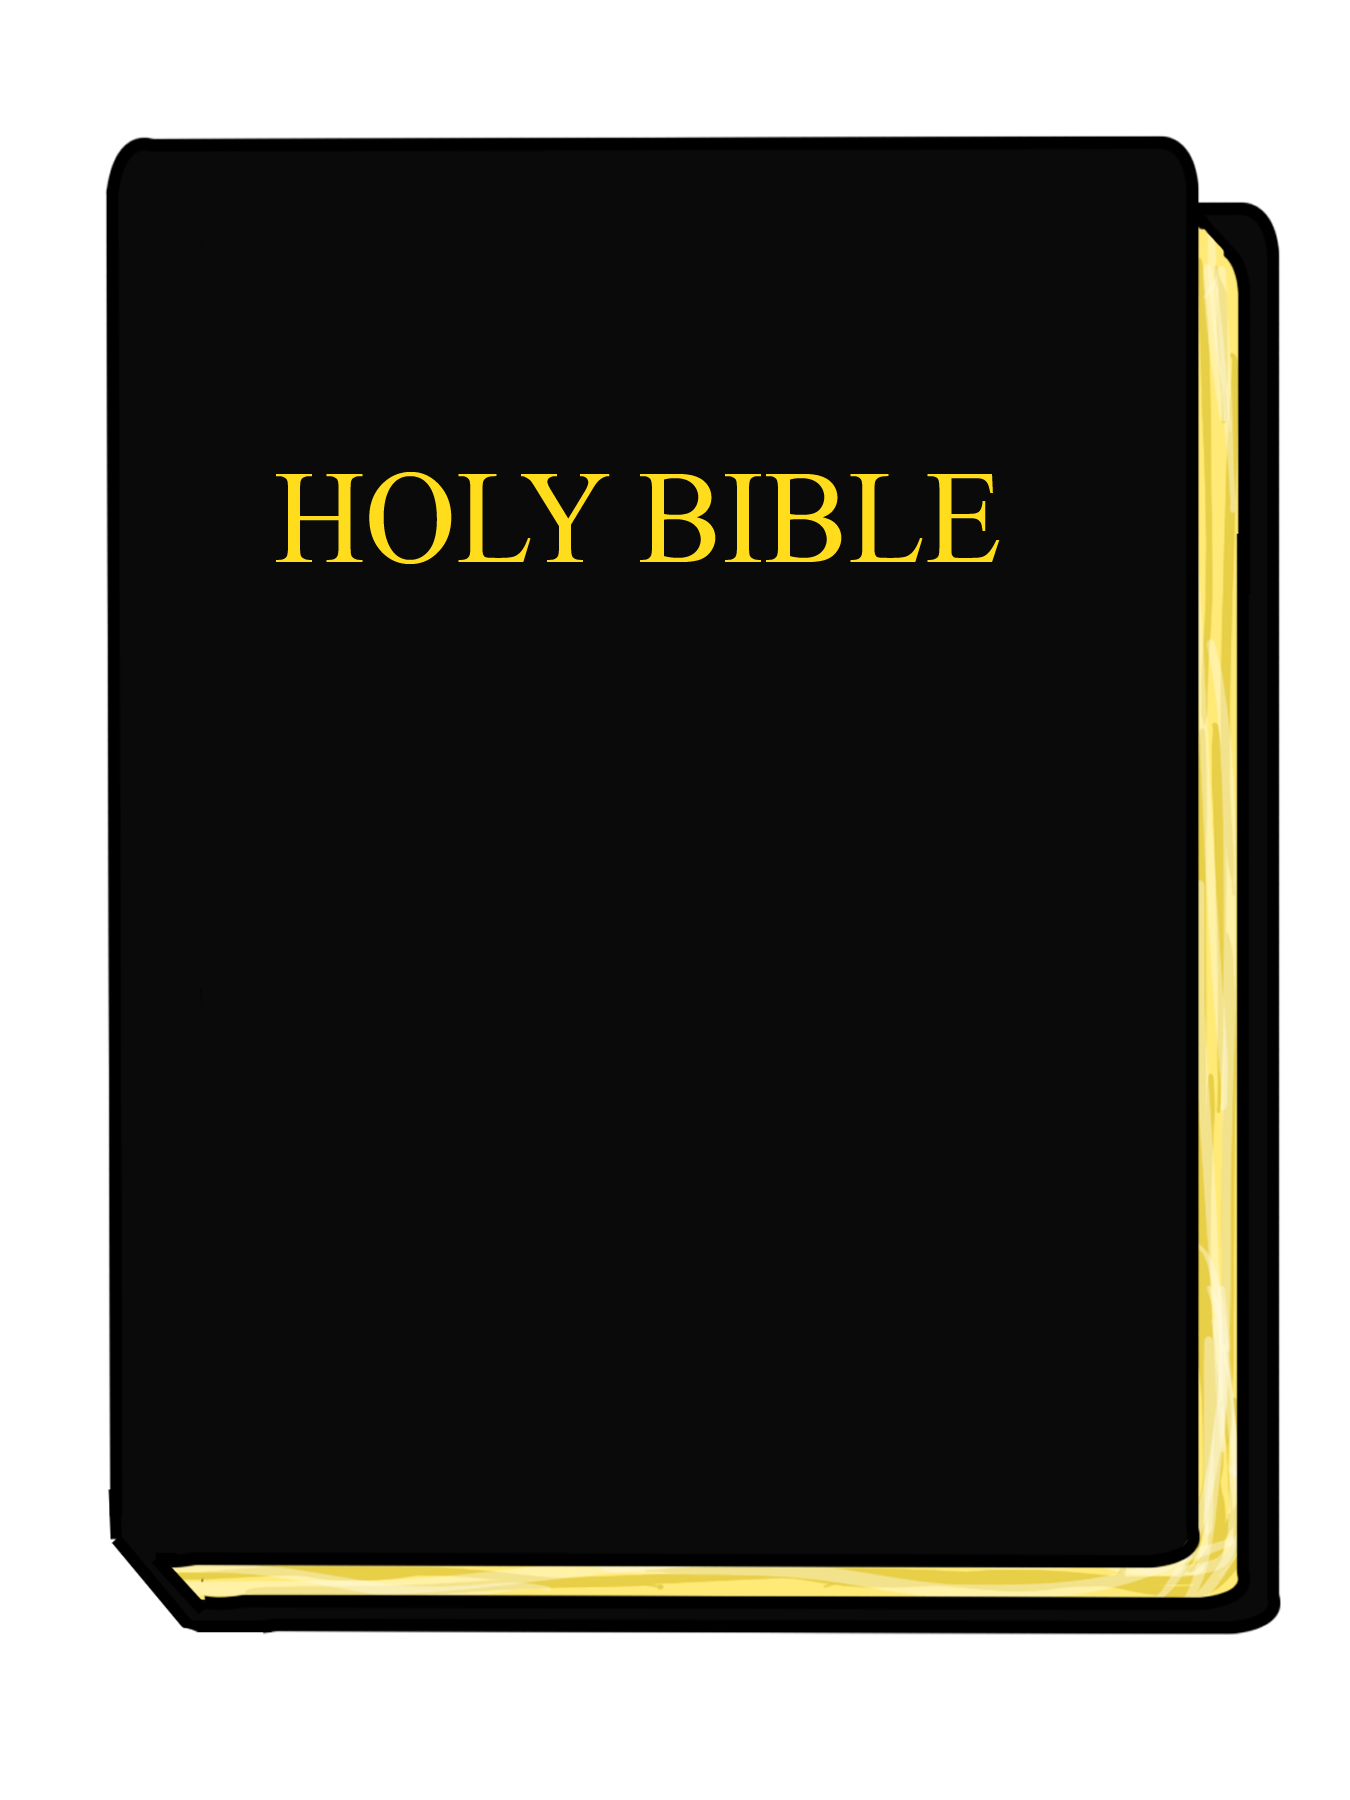 Bible free to use clip art 2